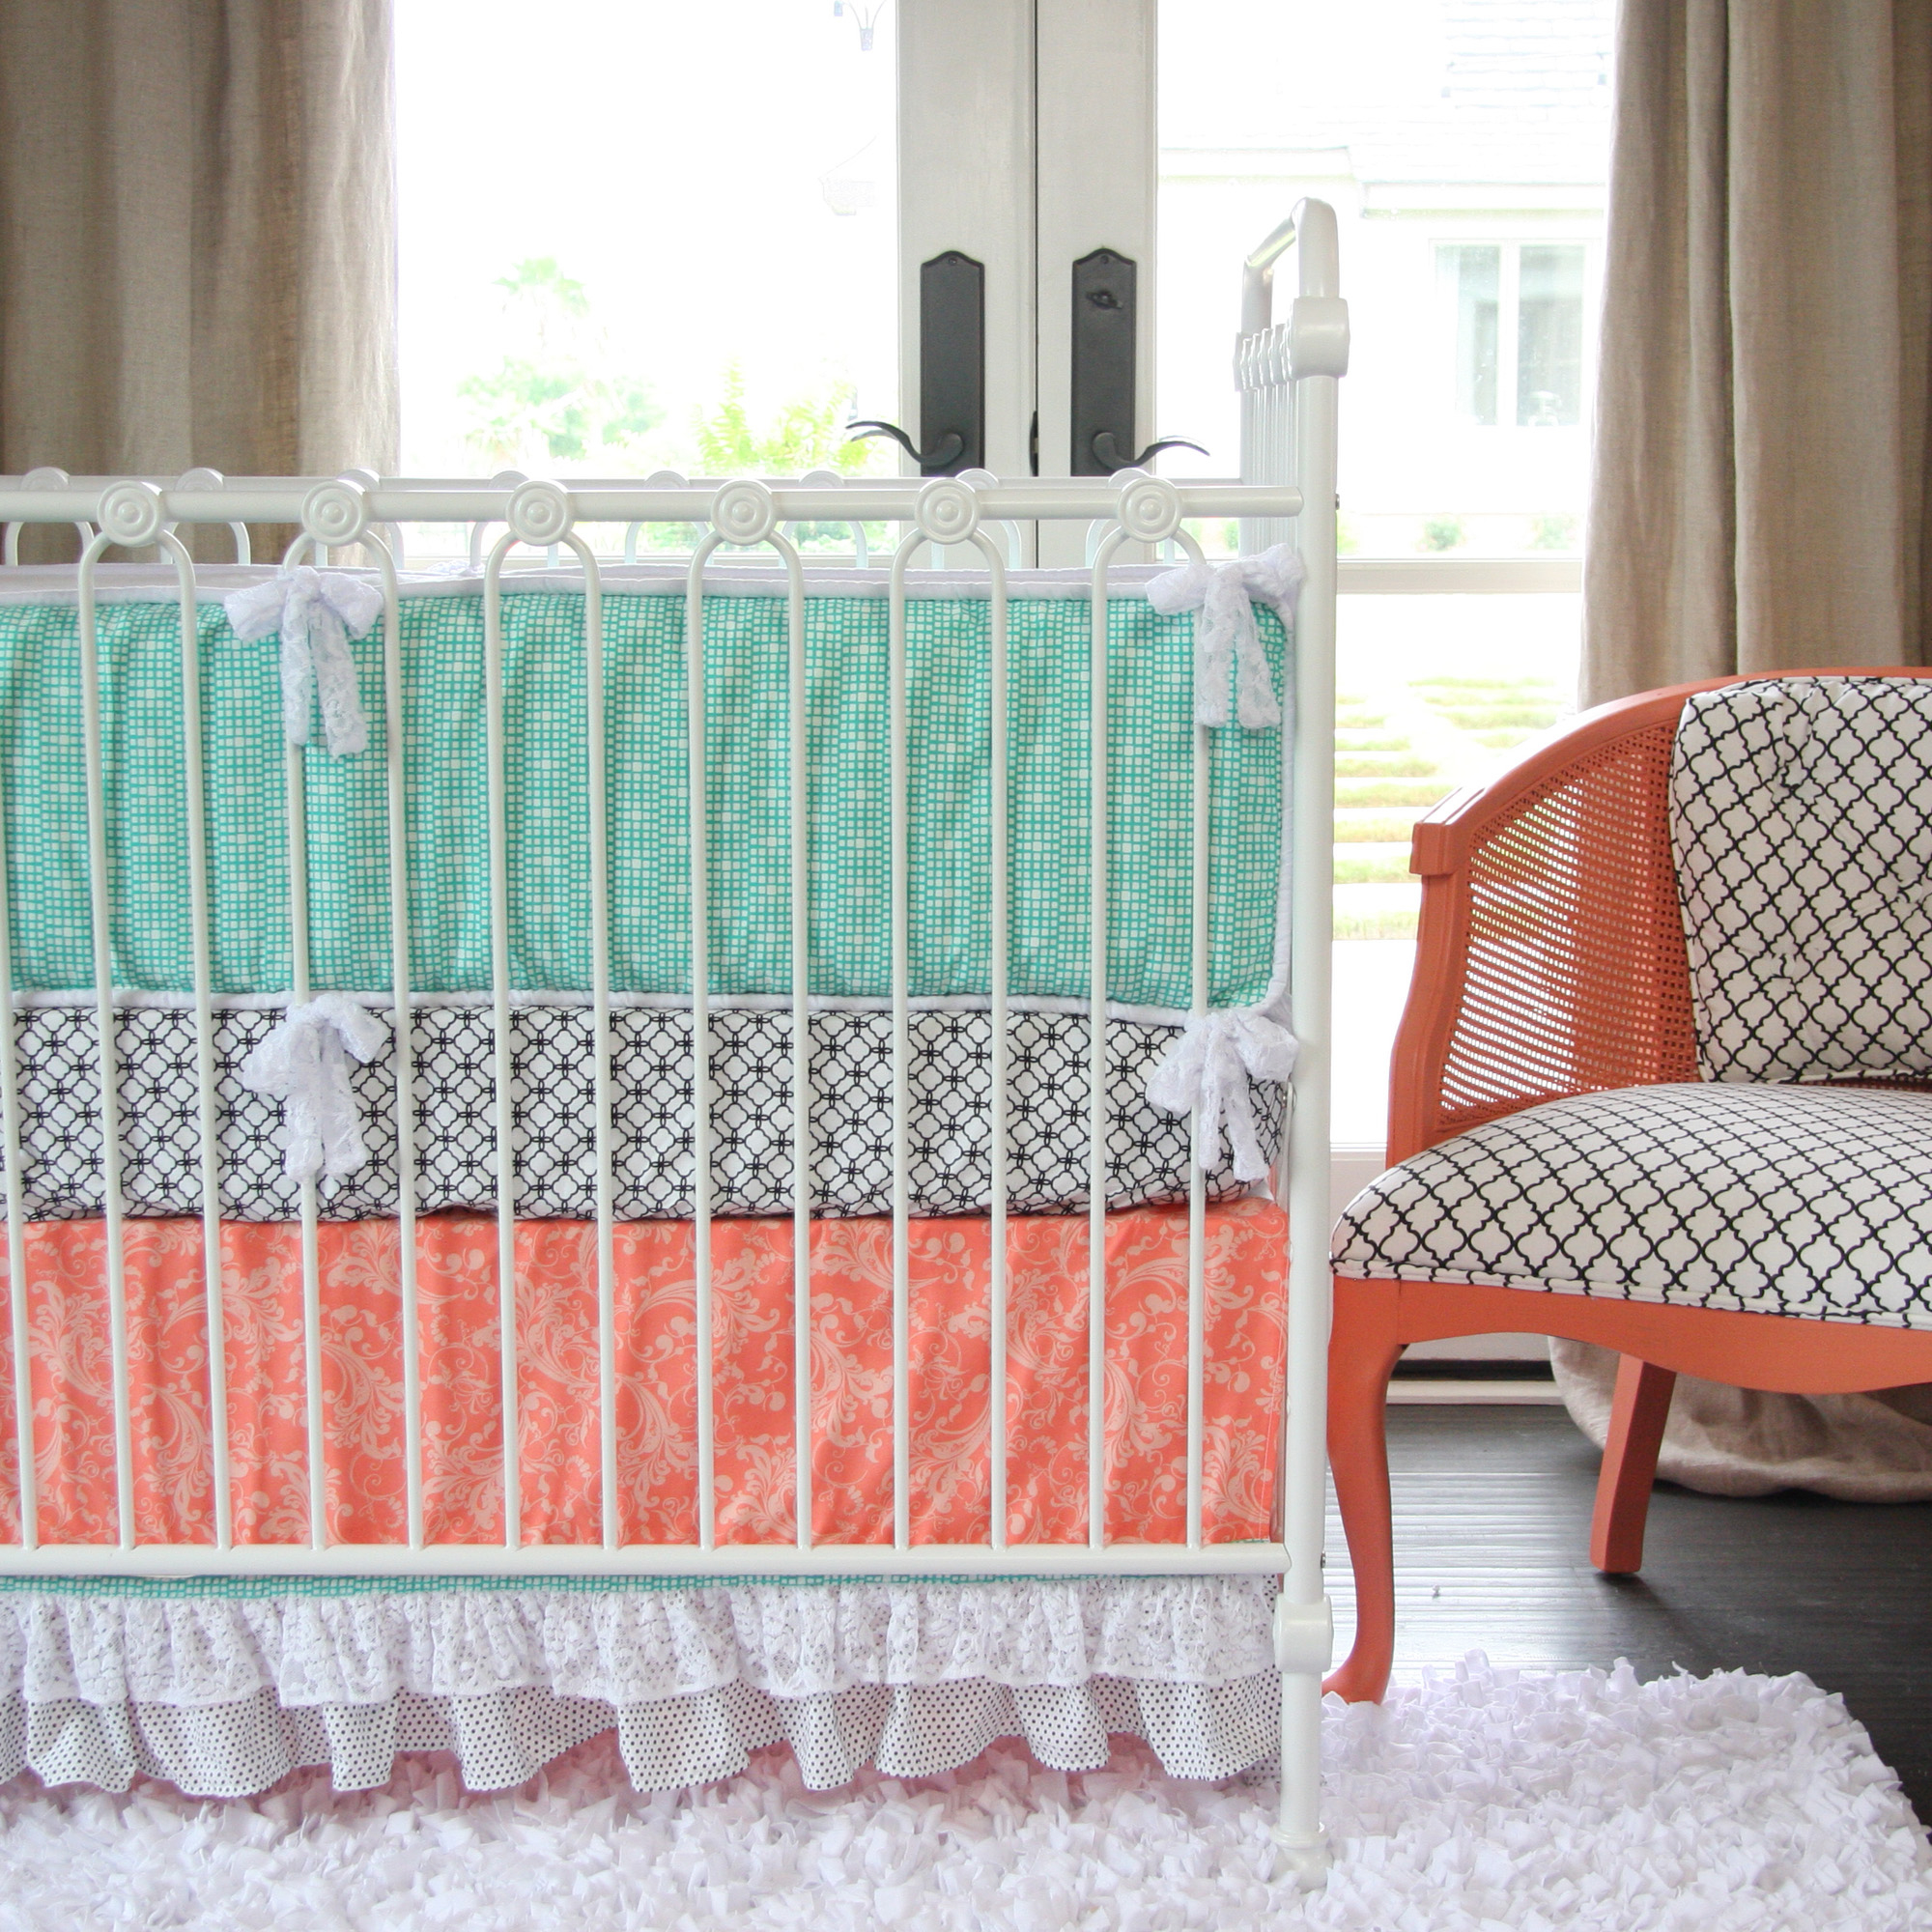 Kids Room Furniture Coral Baby Mod Crib Skirts Pair Perfectly With Blue Soft Nursery And White Metal Baby Rail Stylish Baby Mod Cribs (View 16 of 28)